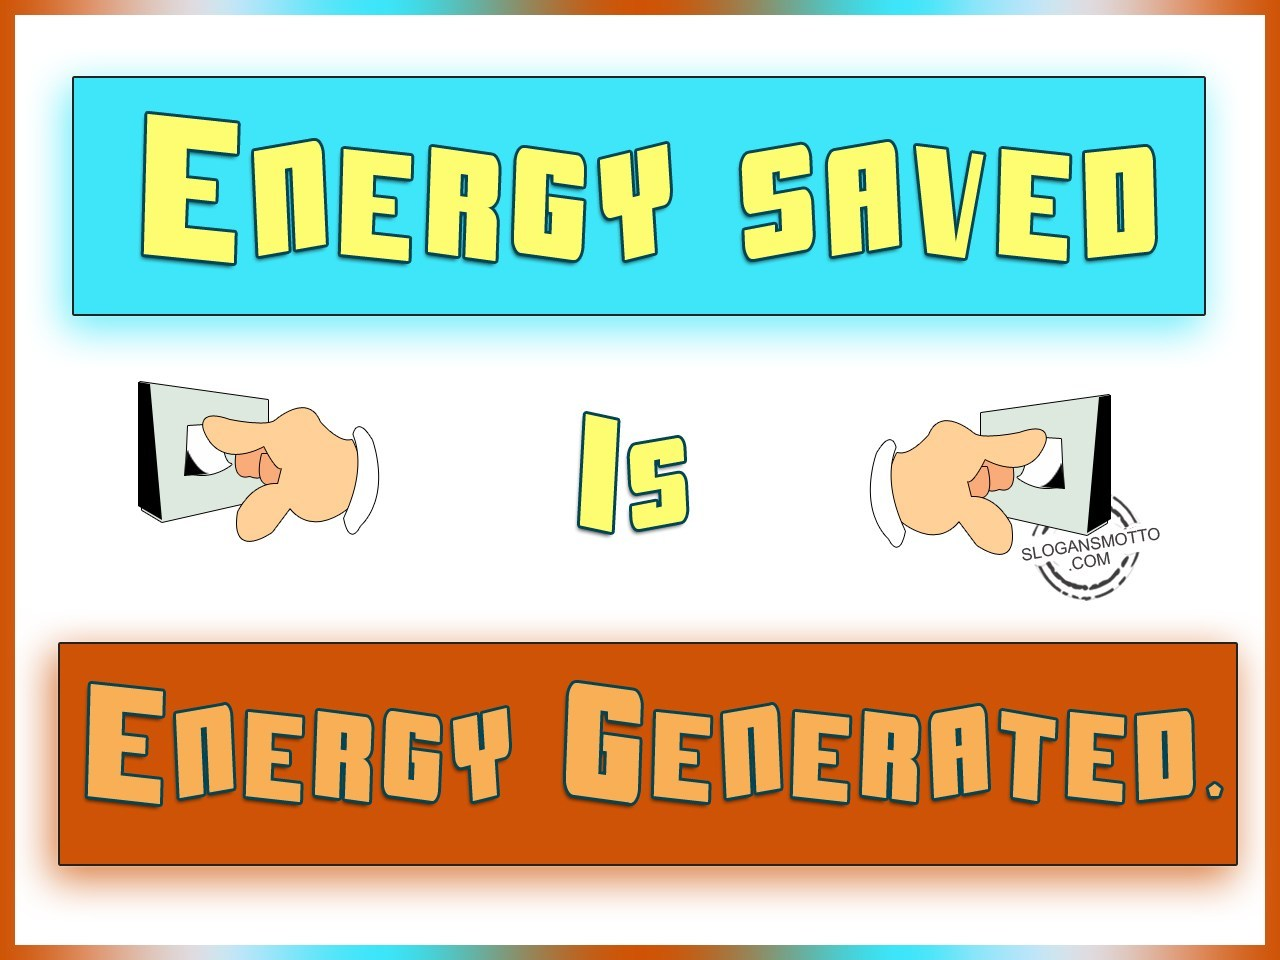 Energy Conservation Slogans